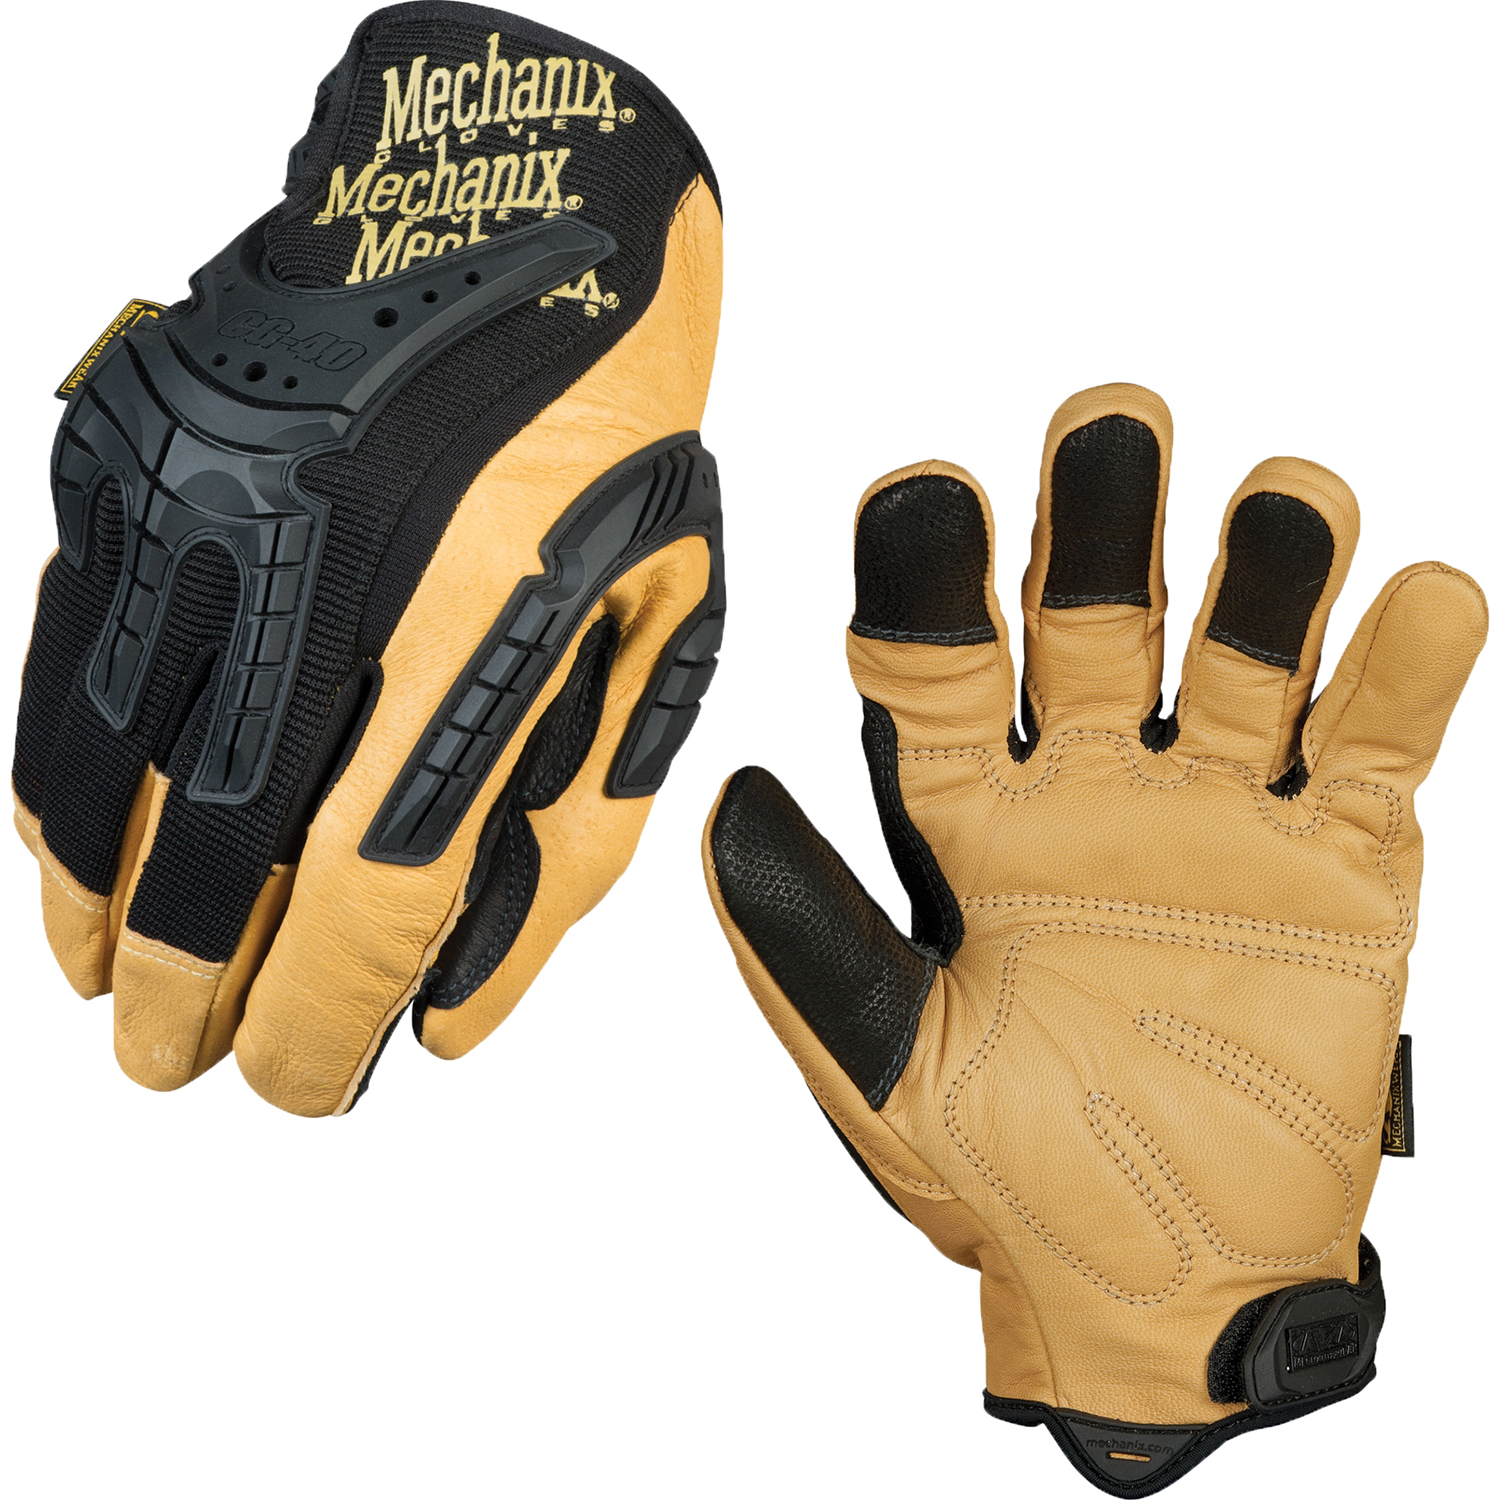 Mechanix Gloves Mpact-3 Black Color Size Medium